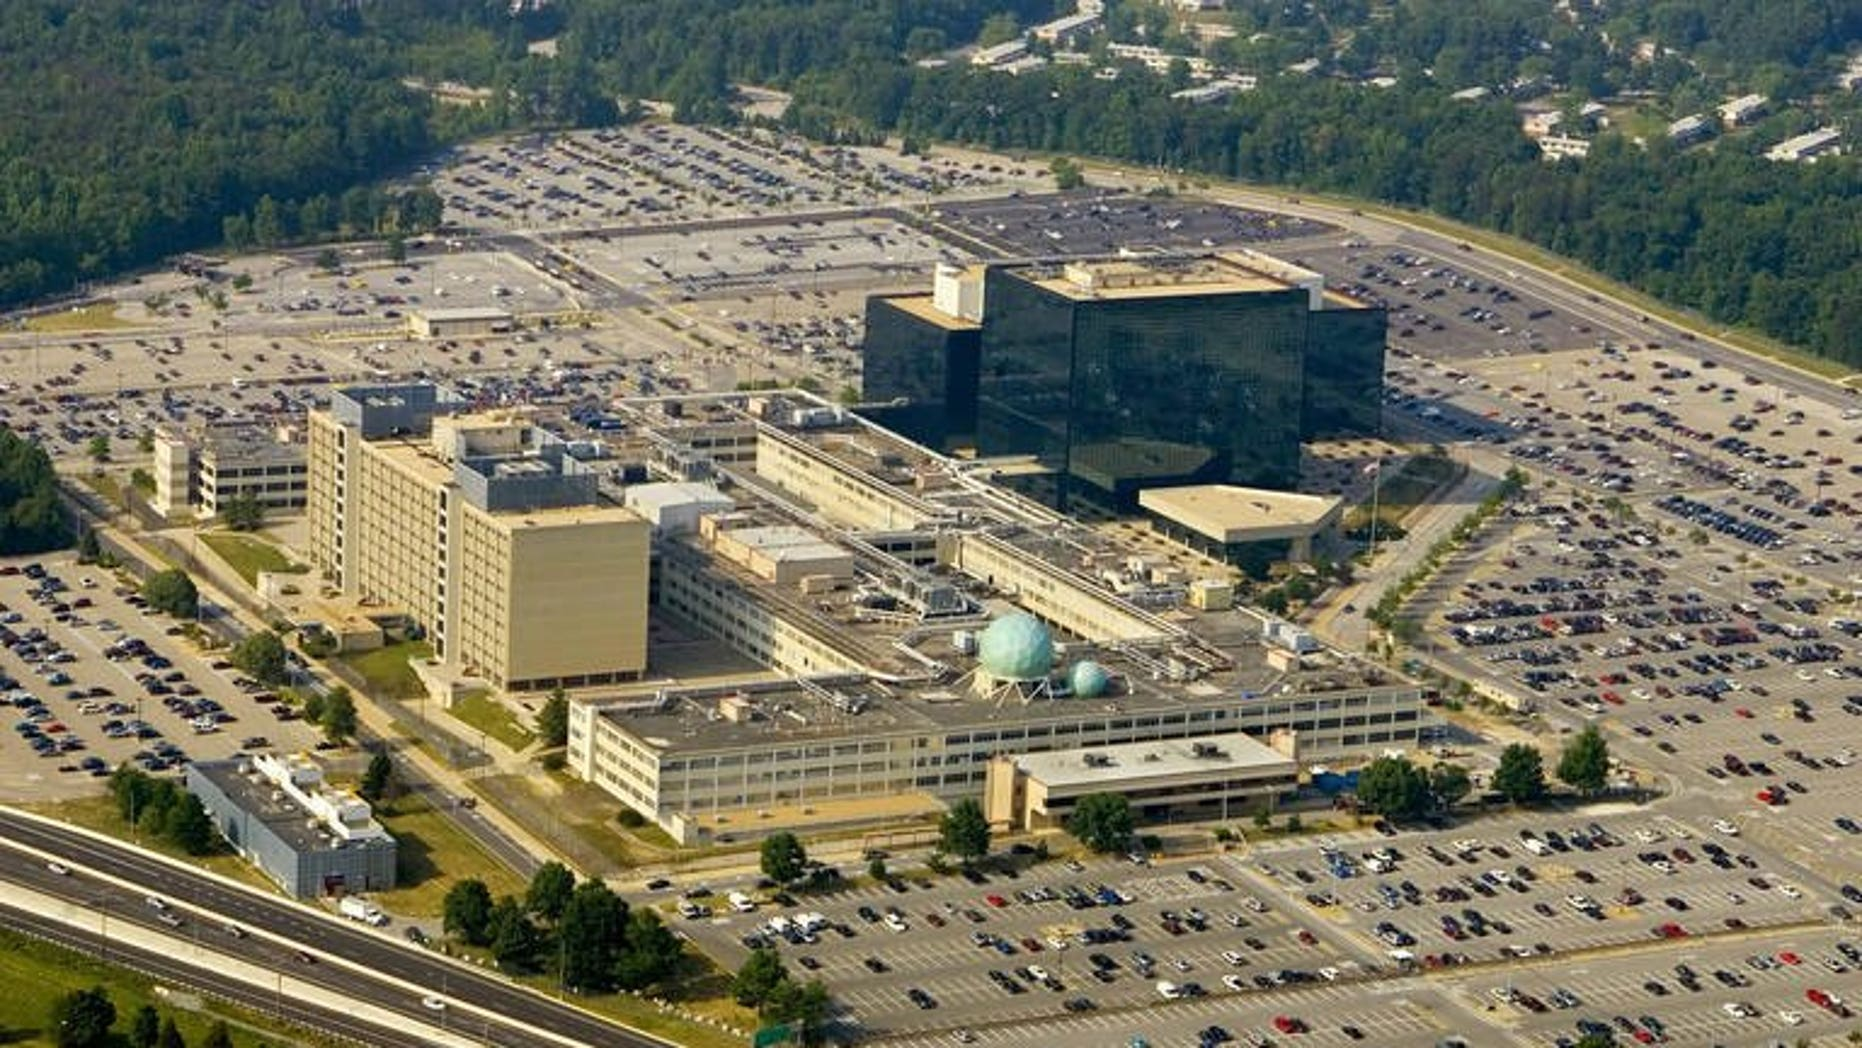 The US National Security Agency (NSA), pictured May 31, 2006 in Fort Meade, Maryland. Britain's electronic eavesdropping agency GCHQ did not illegally use data from the NSA's secret PRISM intelligence programme exposed by Edward Snowden, MPs have said.